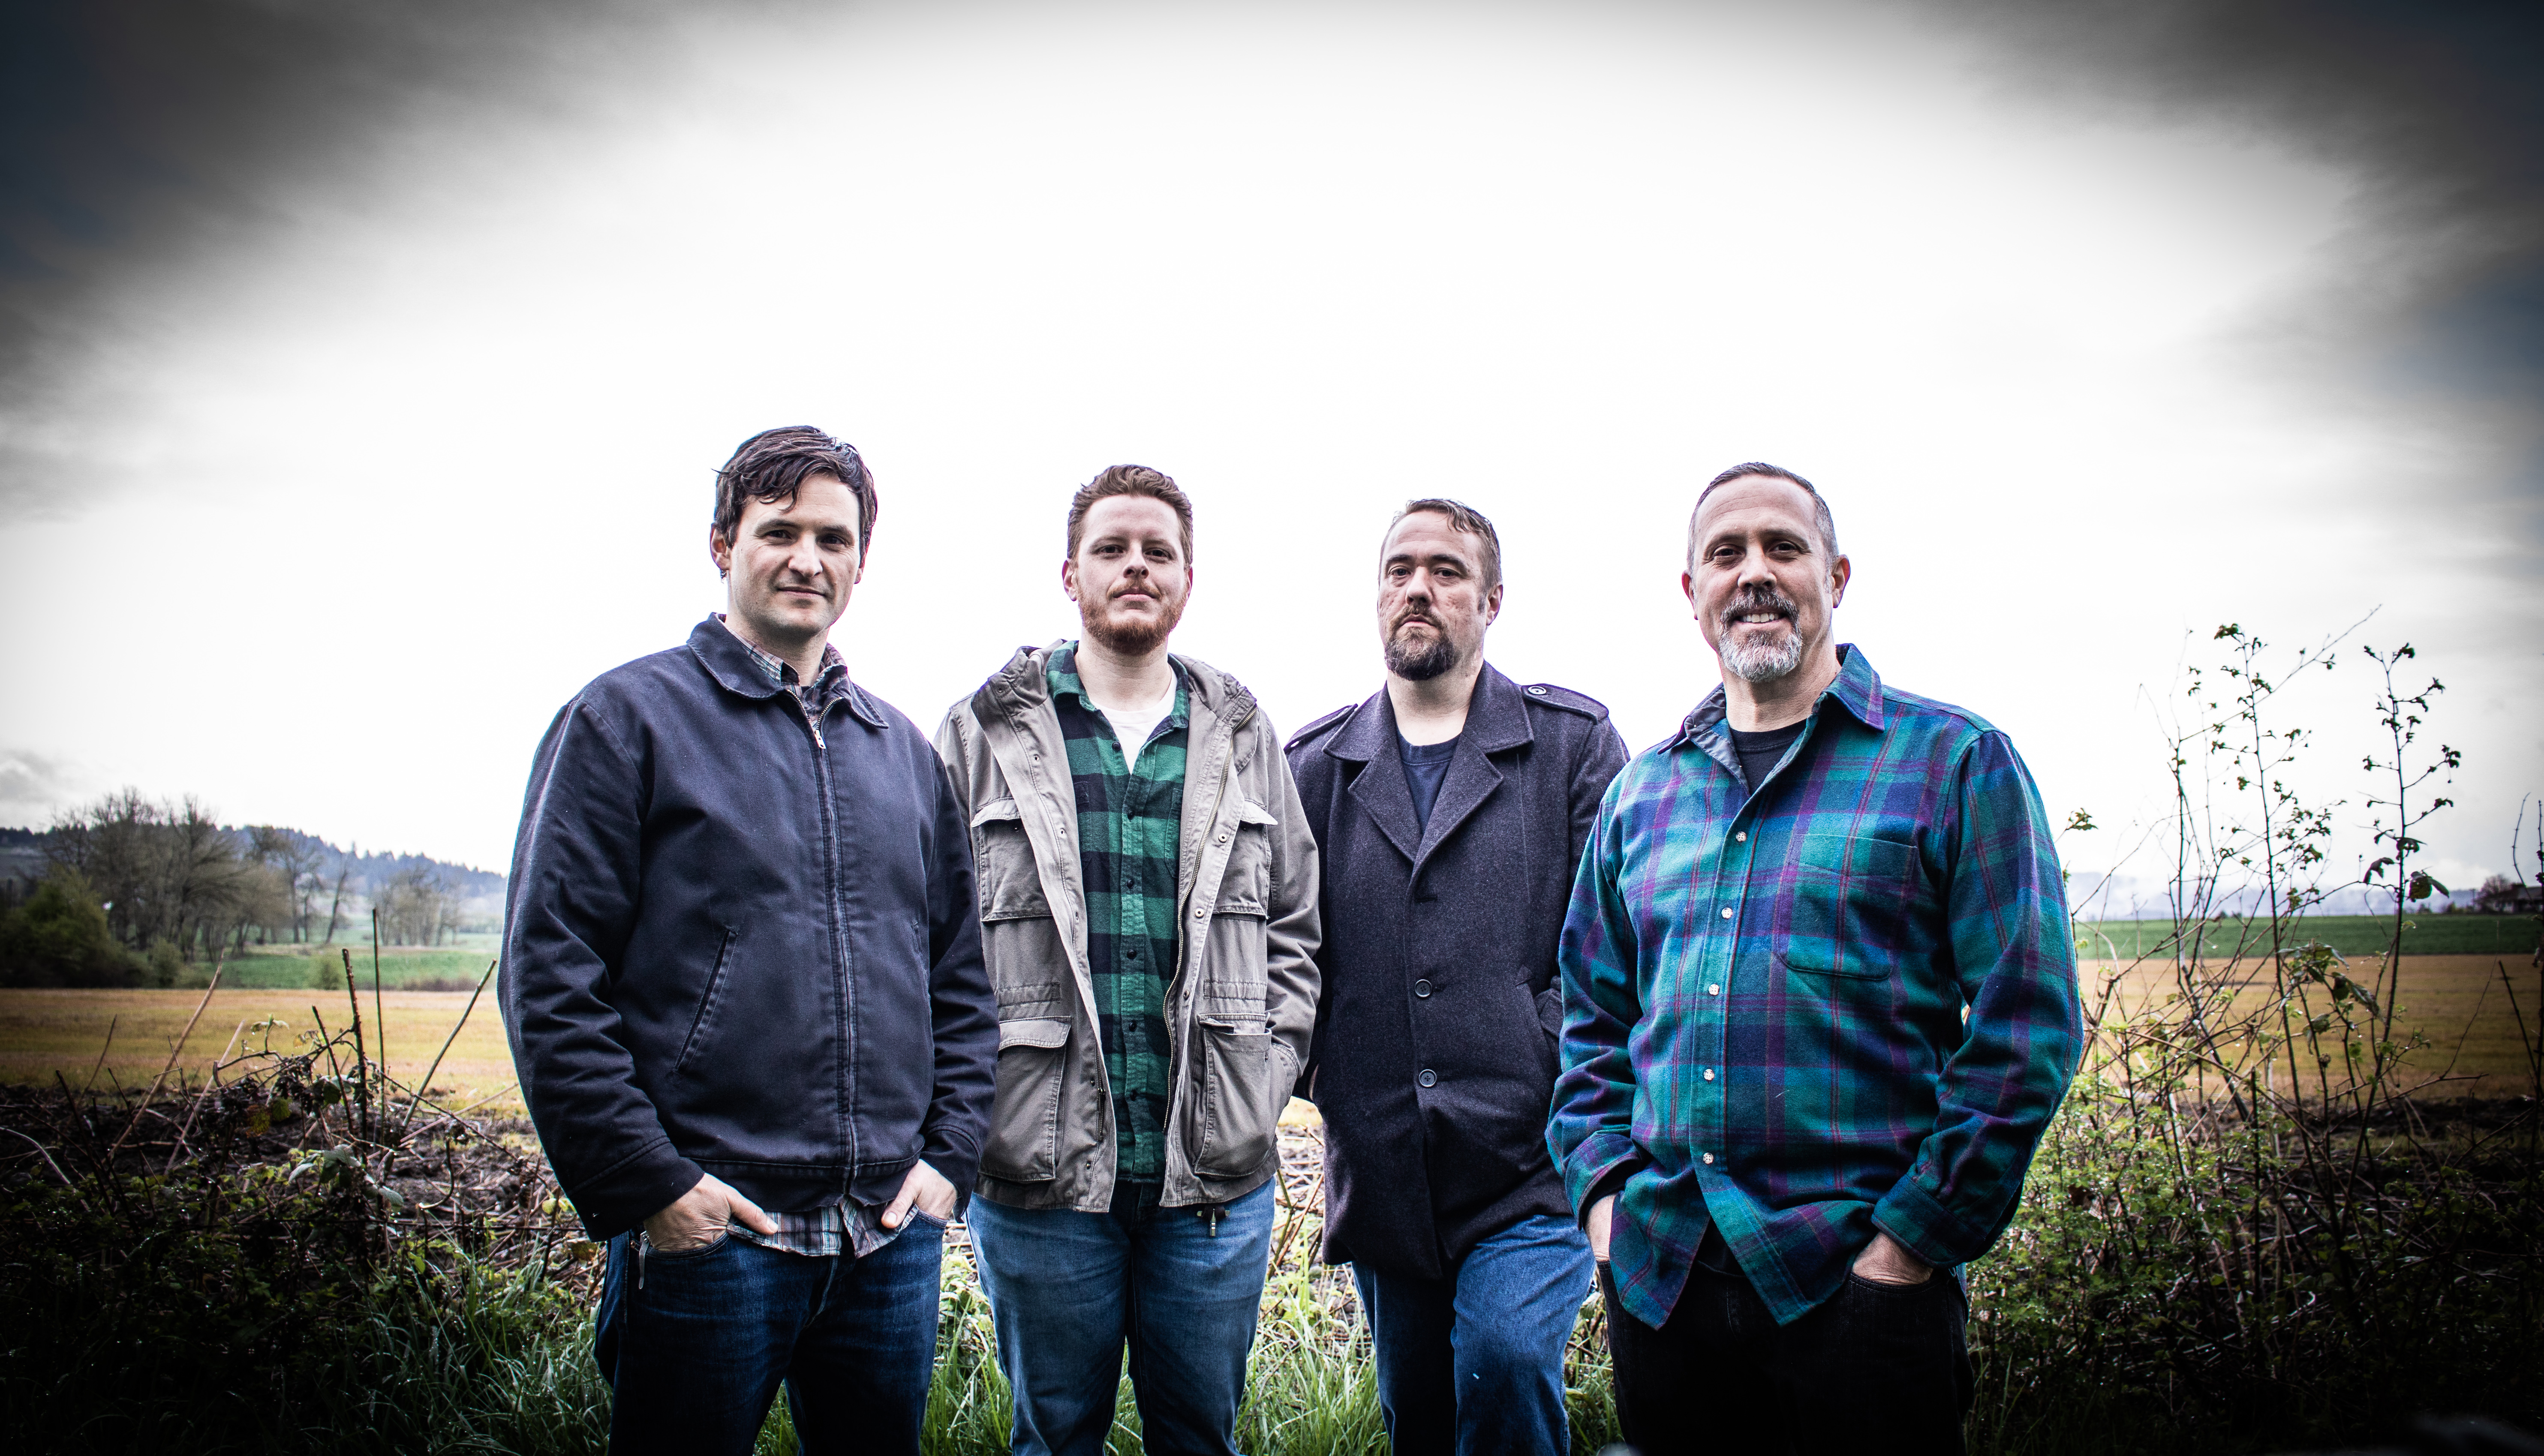 Ships to Roam band members include (from left) Liam Stary (bass), Ryan Hales (drums), Jerome Blankenship (guitar), and Michael Robert Brown (guitar). Not pictured is Jim Garcia (guitar).